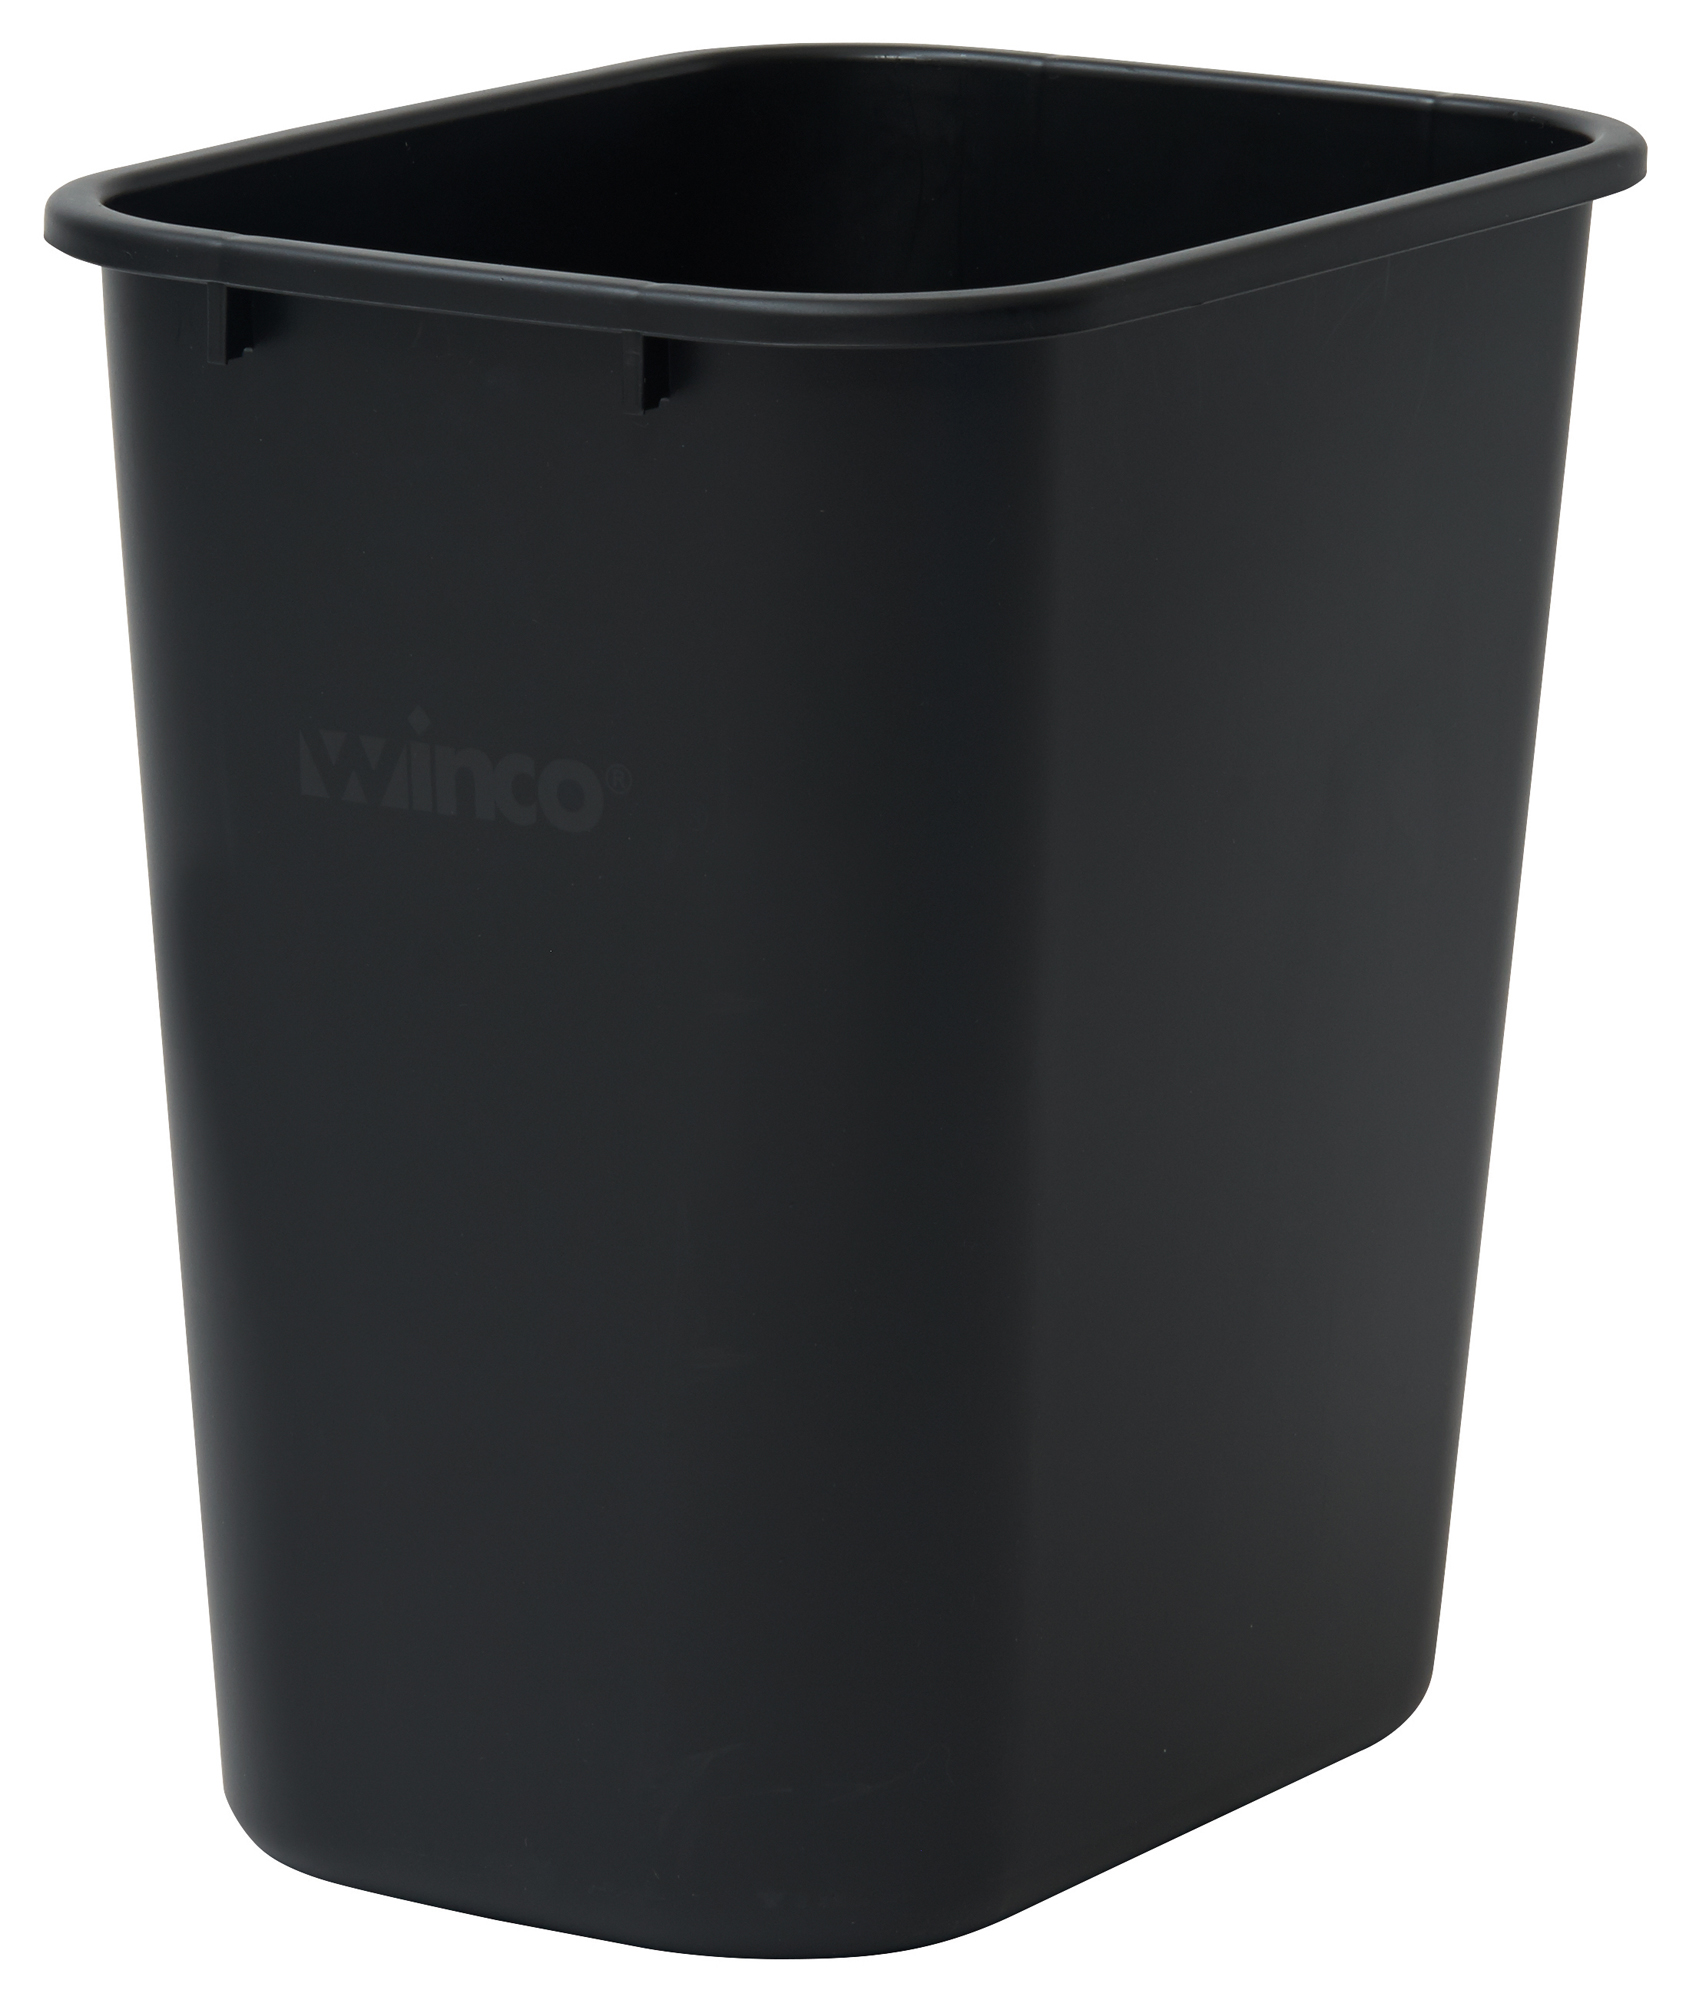 Winco PWR-28K trash cans & accessories